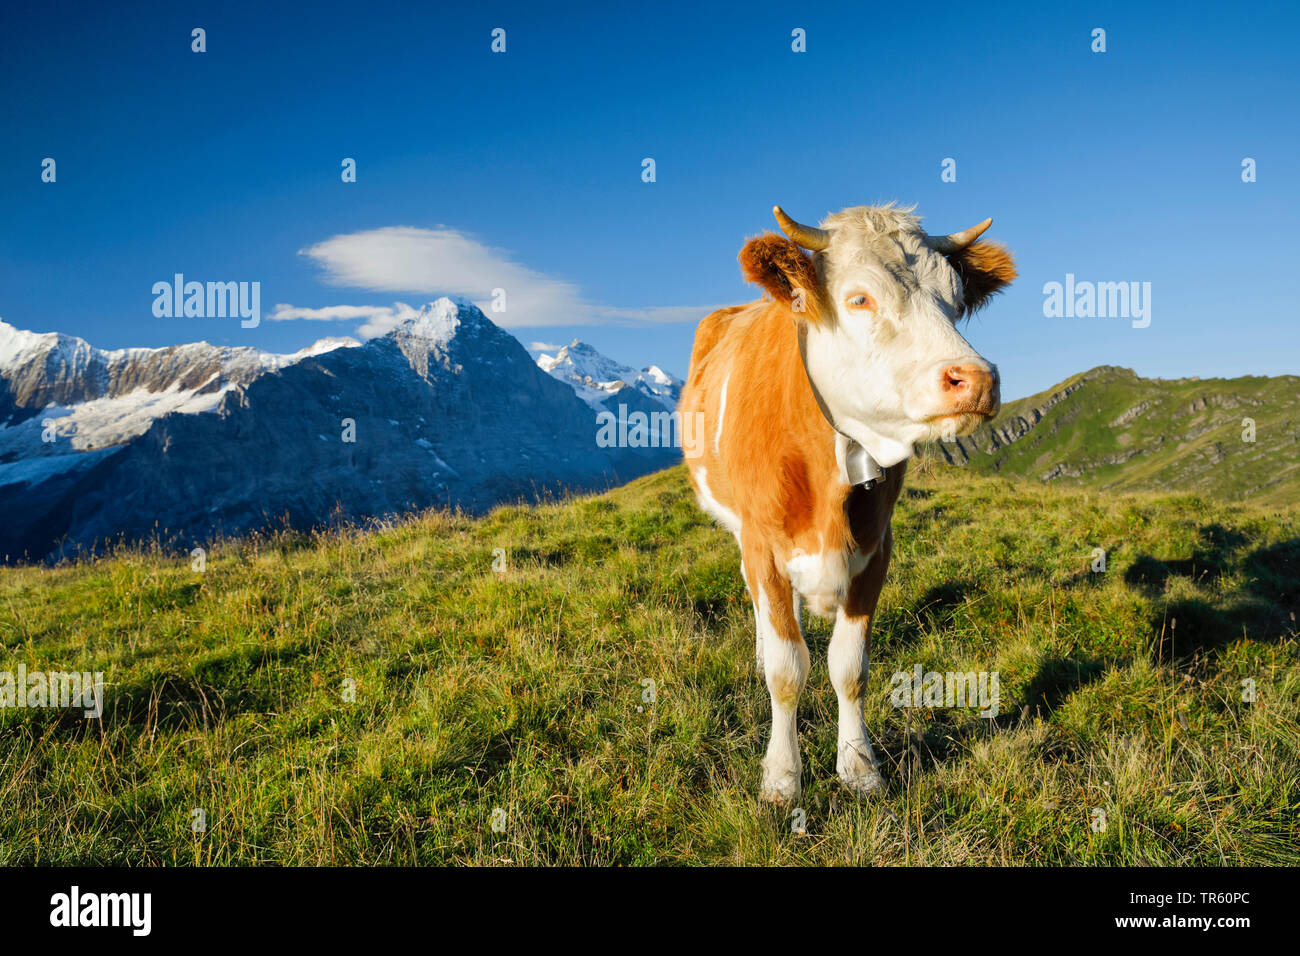 domestic cattle (Bos primigenius f. taurus), Fleckvieh standing on an alpine pasture, Eiger, Moench and Jungfrau in the background, Switzerland, Bernese Oberland Stock Photo